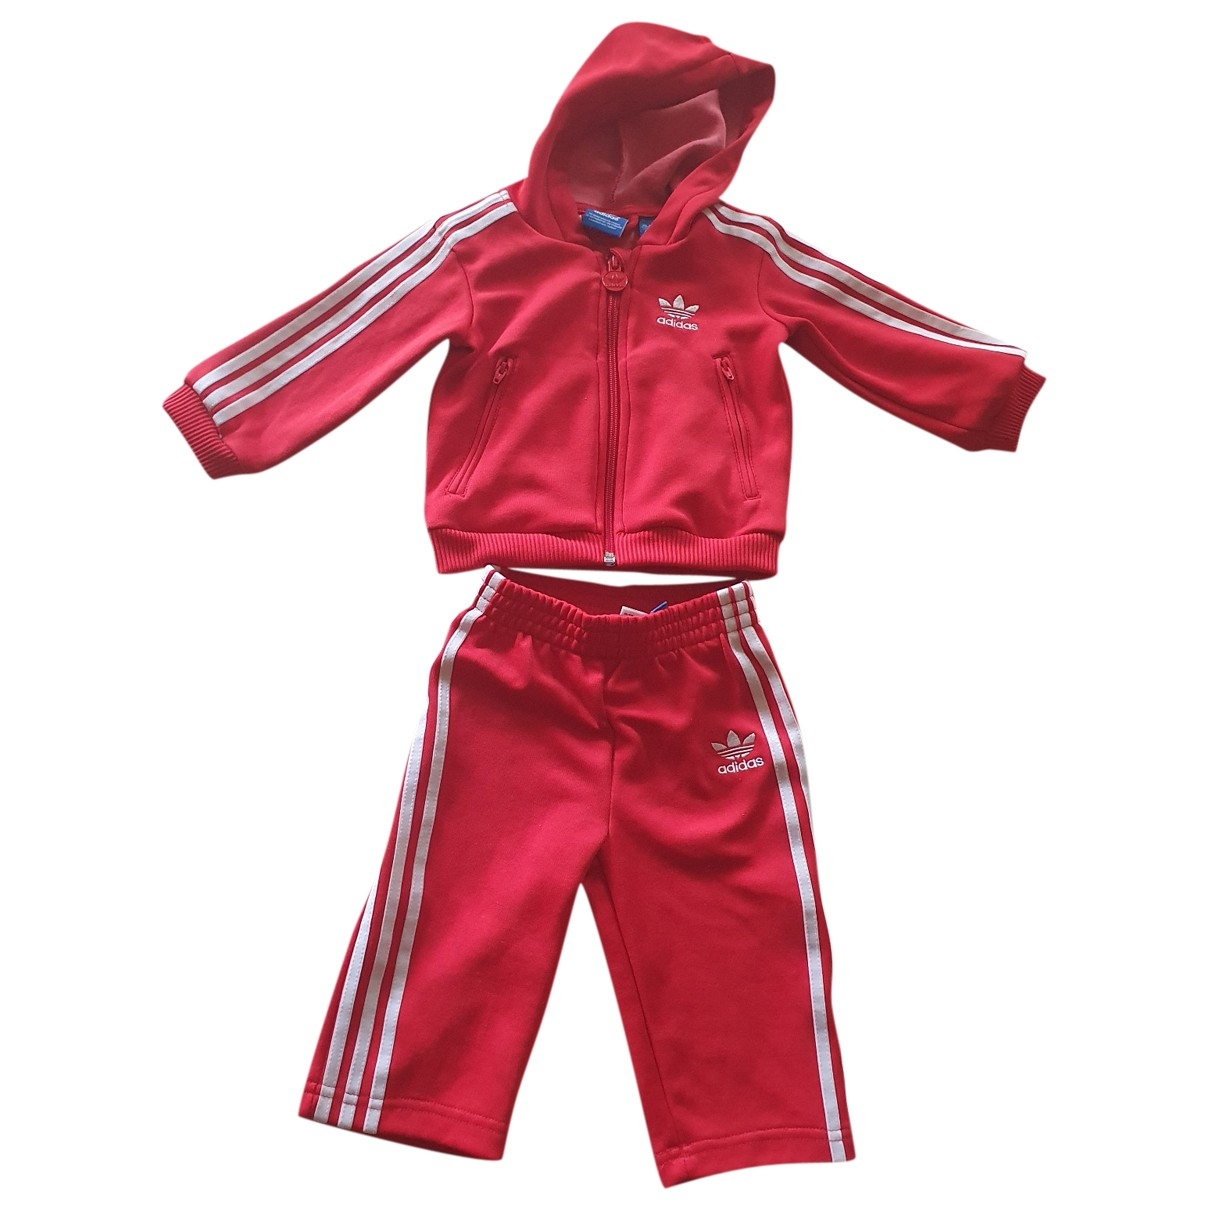 Adidas \N Red Outfits for Kids 9 months - up to 71cm FR